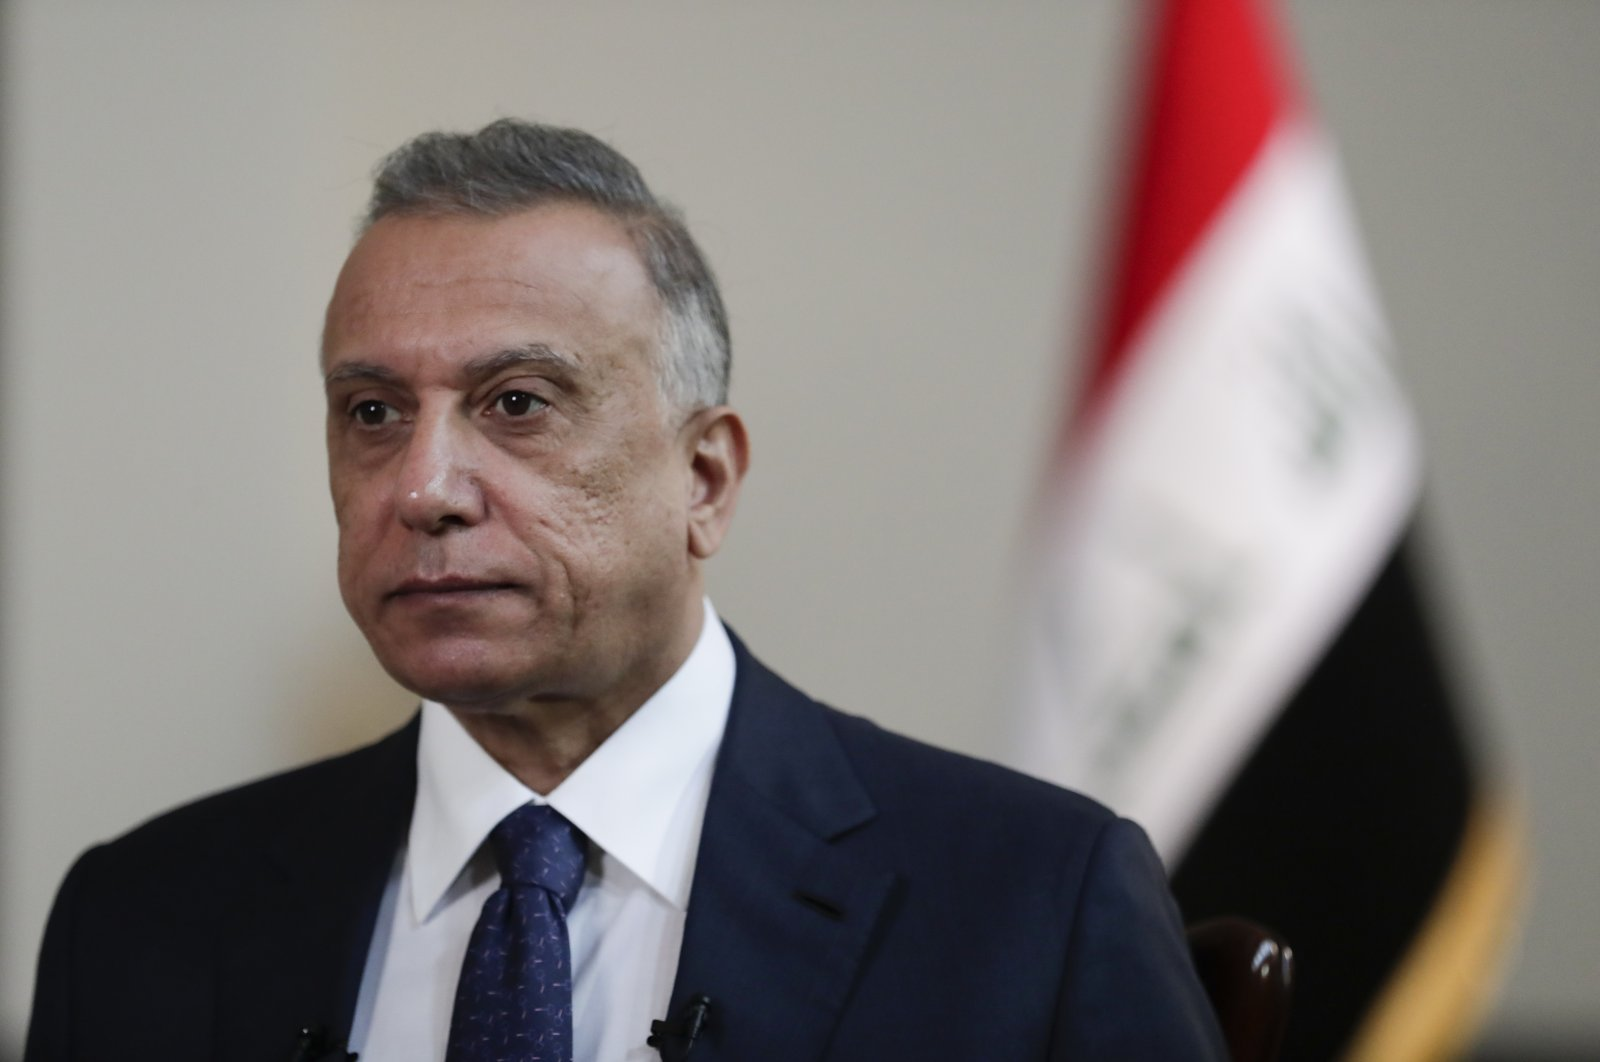 Iraqi Prime Minister Mustafa al-Kadhimi poses in his office during an interview with The Associated Press (AP) in Baghdad, Iraq, Friday, July 23, 2021. (AP File Photo)